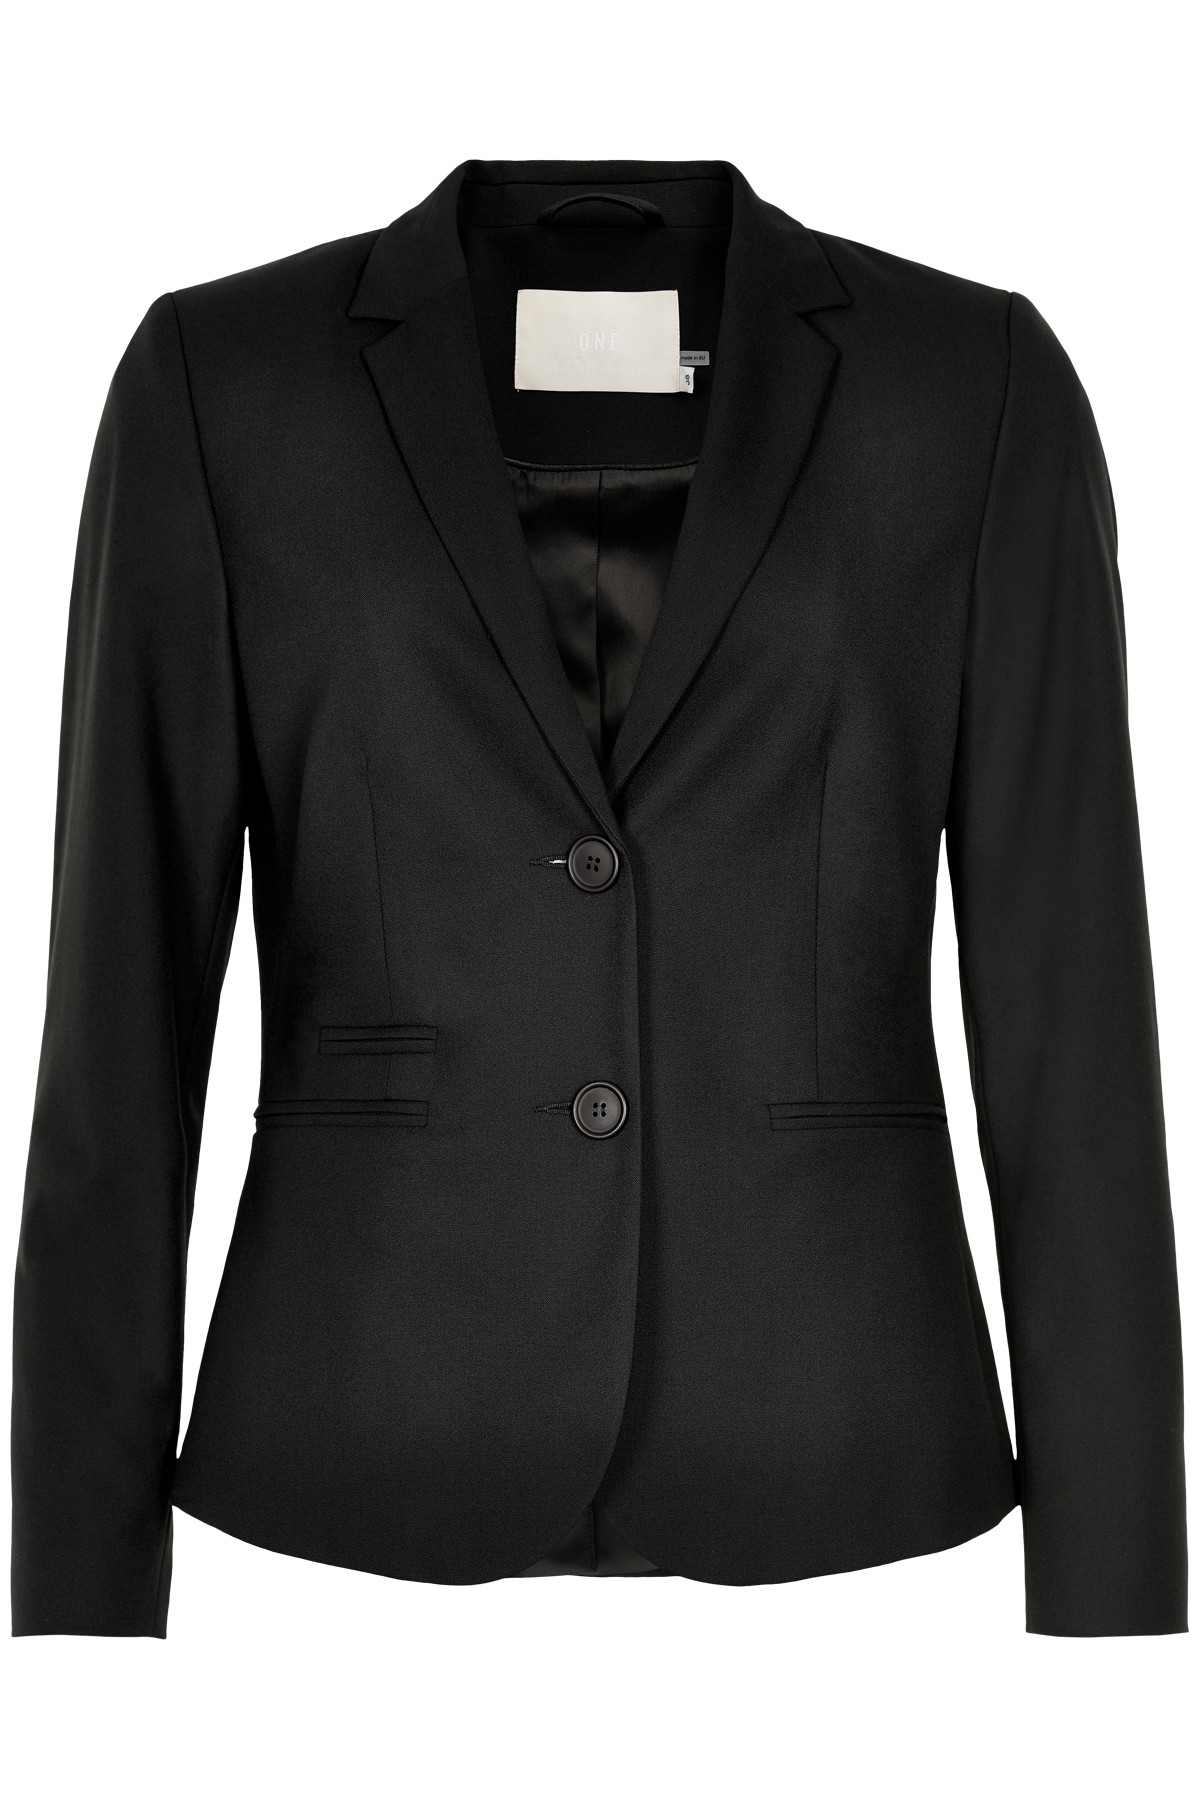 Image of   KAREN BY SIMONSEN SYDNEY BLAZER 10102089 (Black 40999, 46)